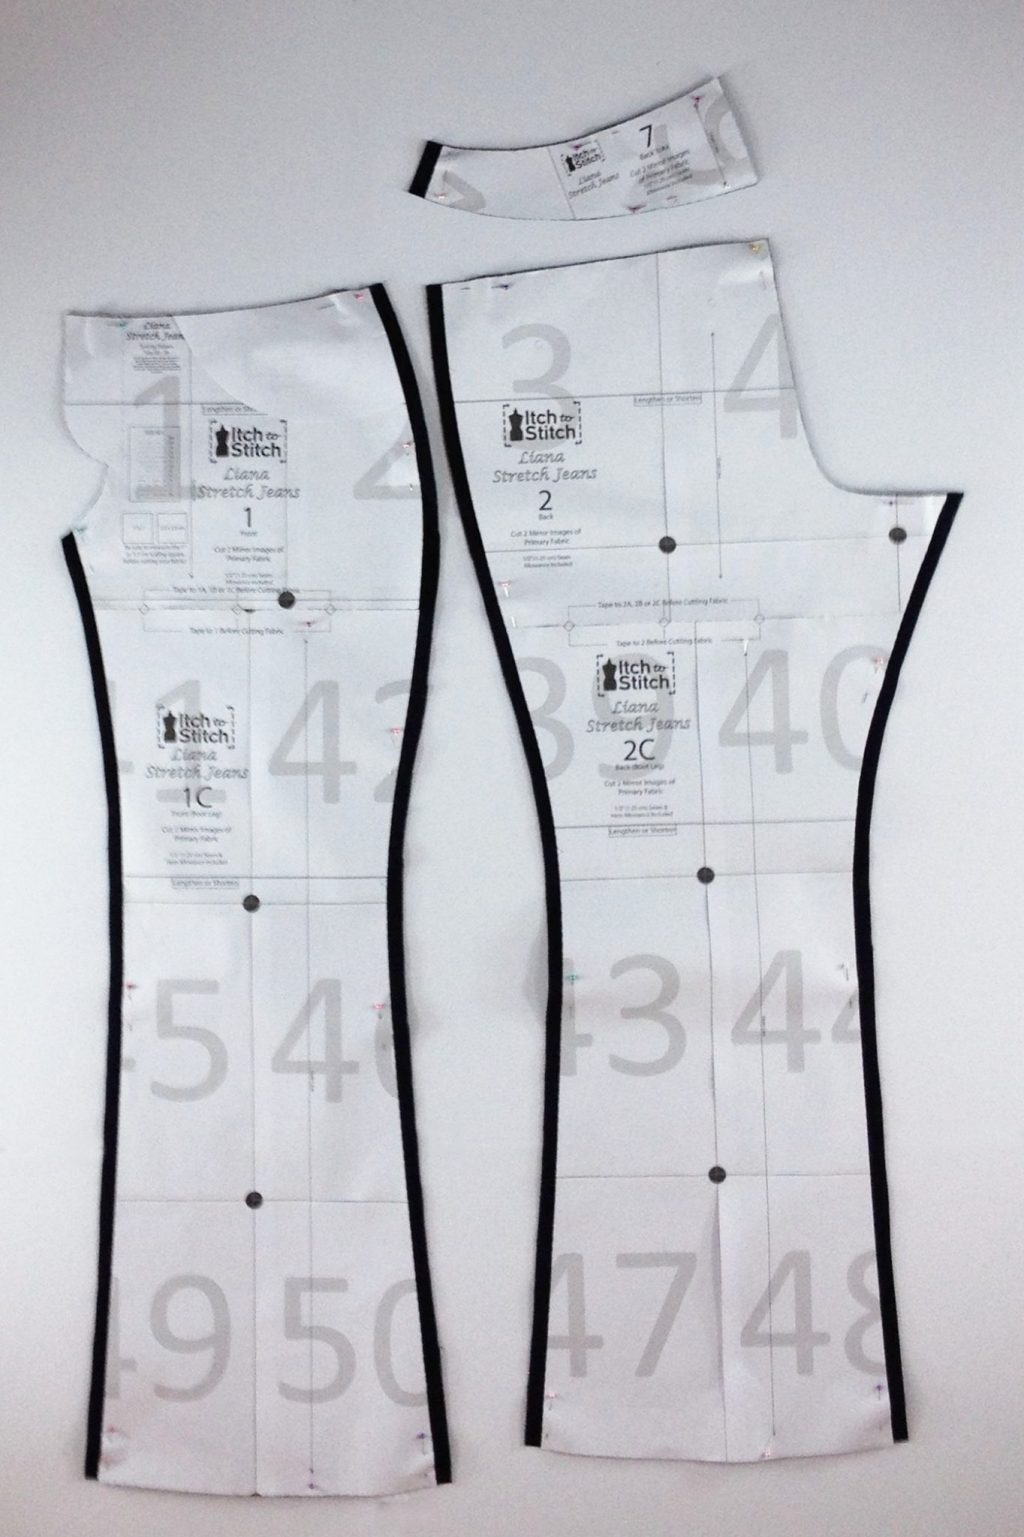 Liana Stretch Jeans Sewalong Day 3 Cut out pieces